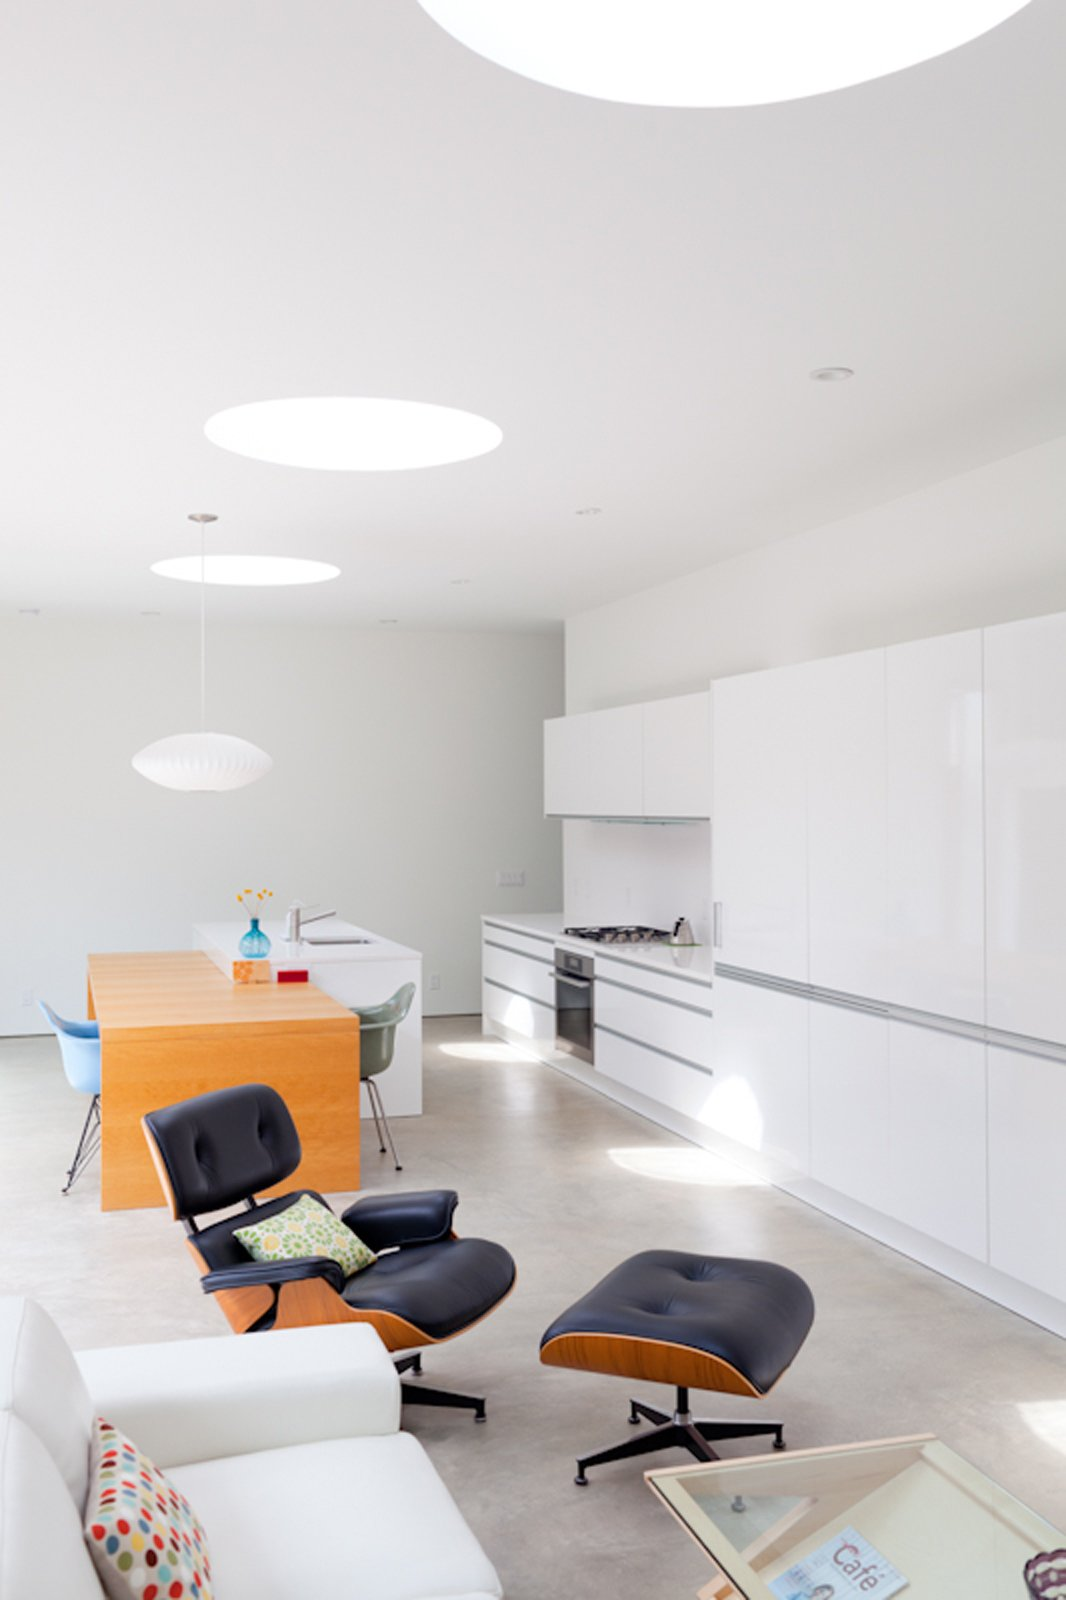 Though loads of natural light comes in from the courtyard, these large skylights also afford a view of the sky. The coffee table is from Modernica and the Eames Lounge is from Herman Miller. Looking Inward - Photo 17 of 19